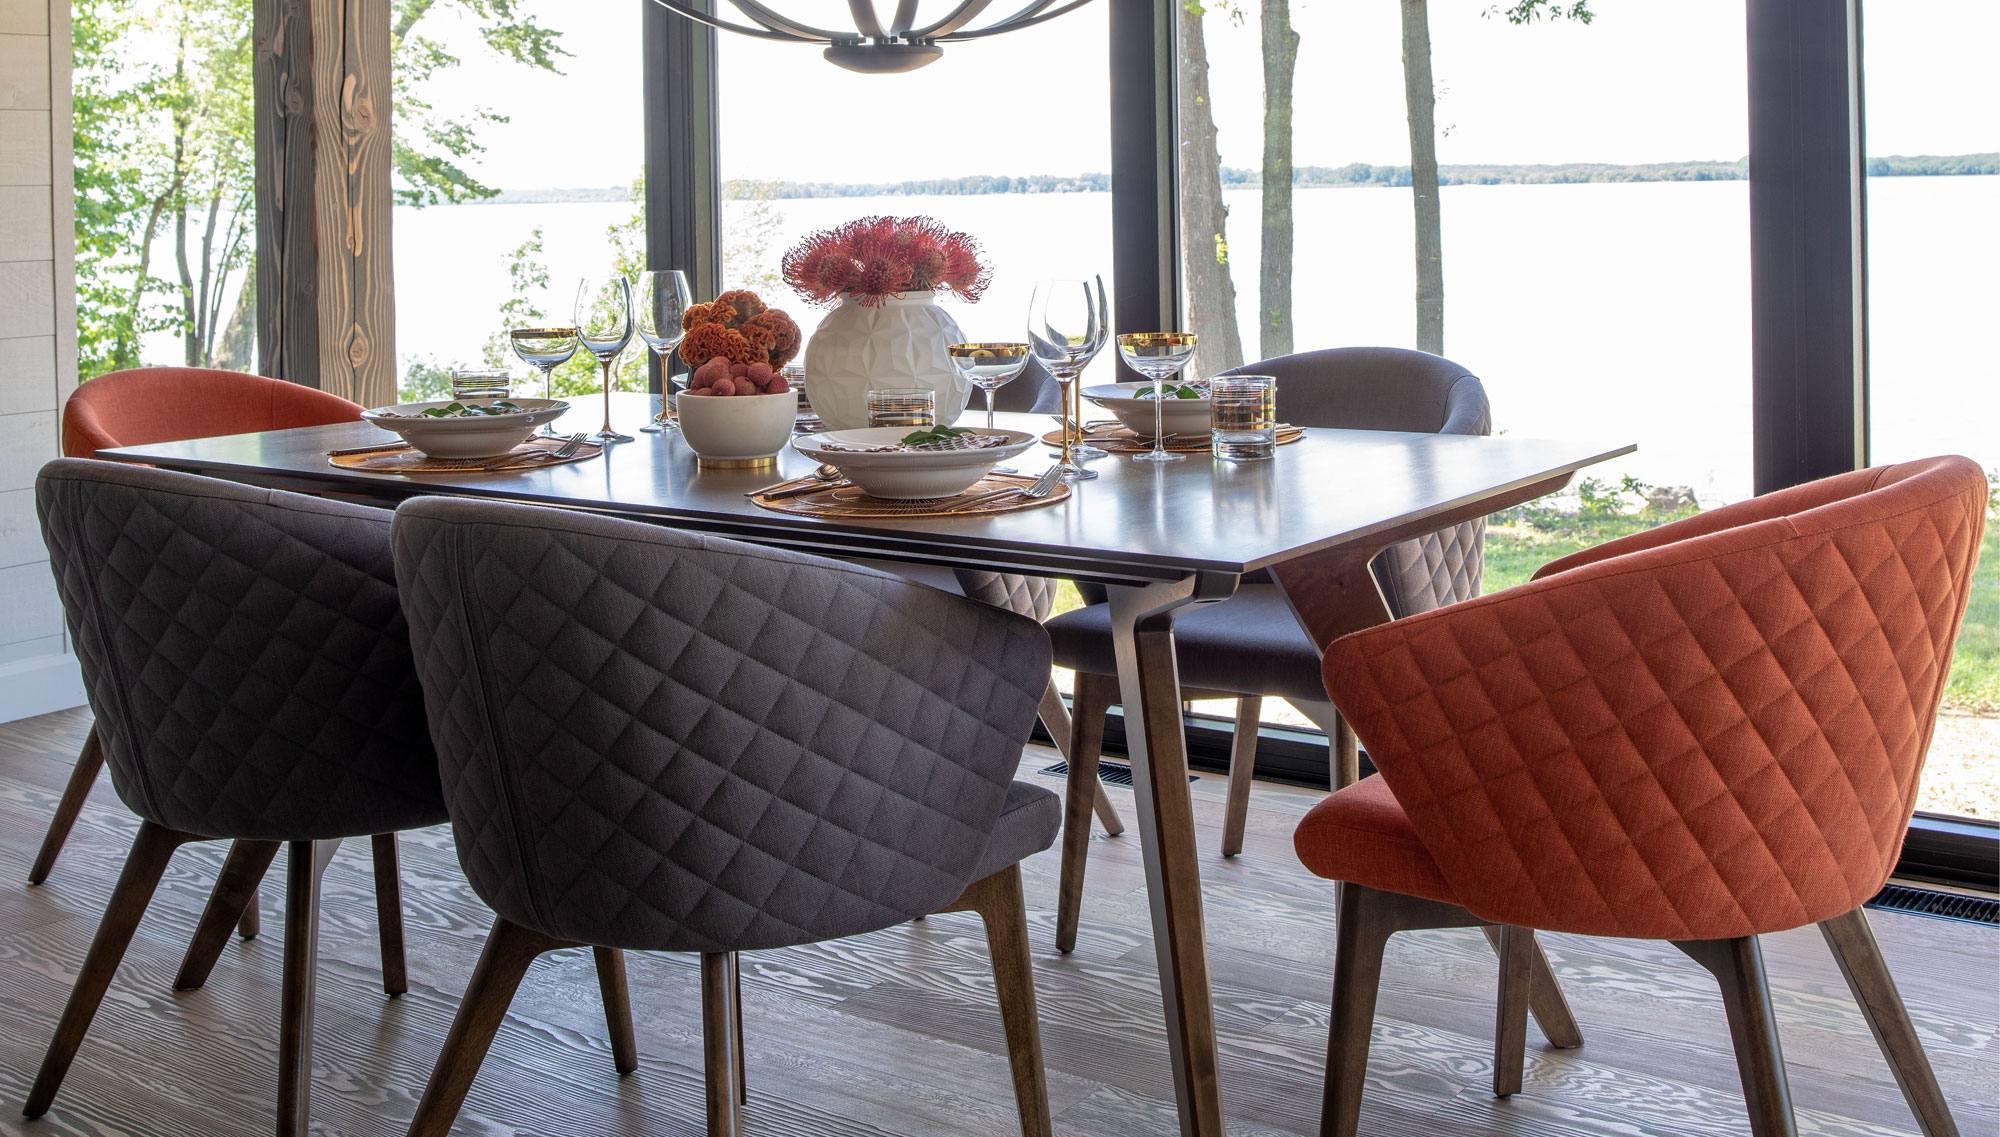 Most Up To Date Transitional 6 Seating Casual Dining Tables With Handcrafted In North America – Kitchen And Dining Room – Canadel (Gallery 30 of 30)